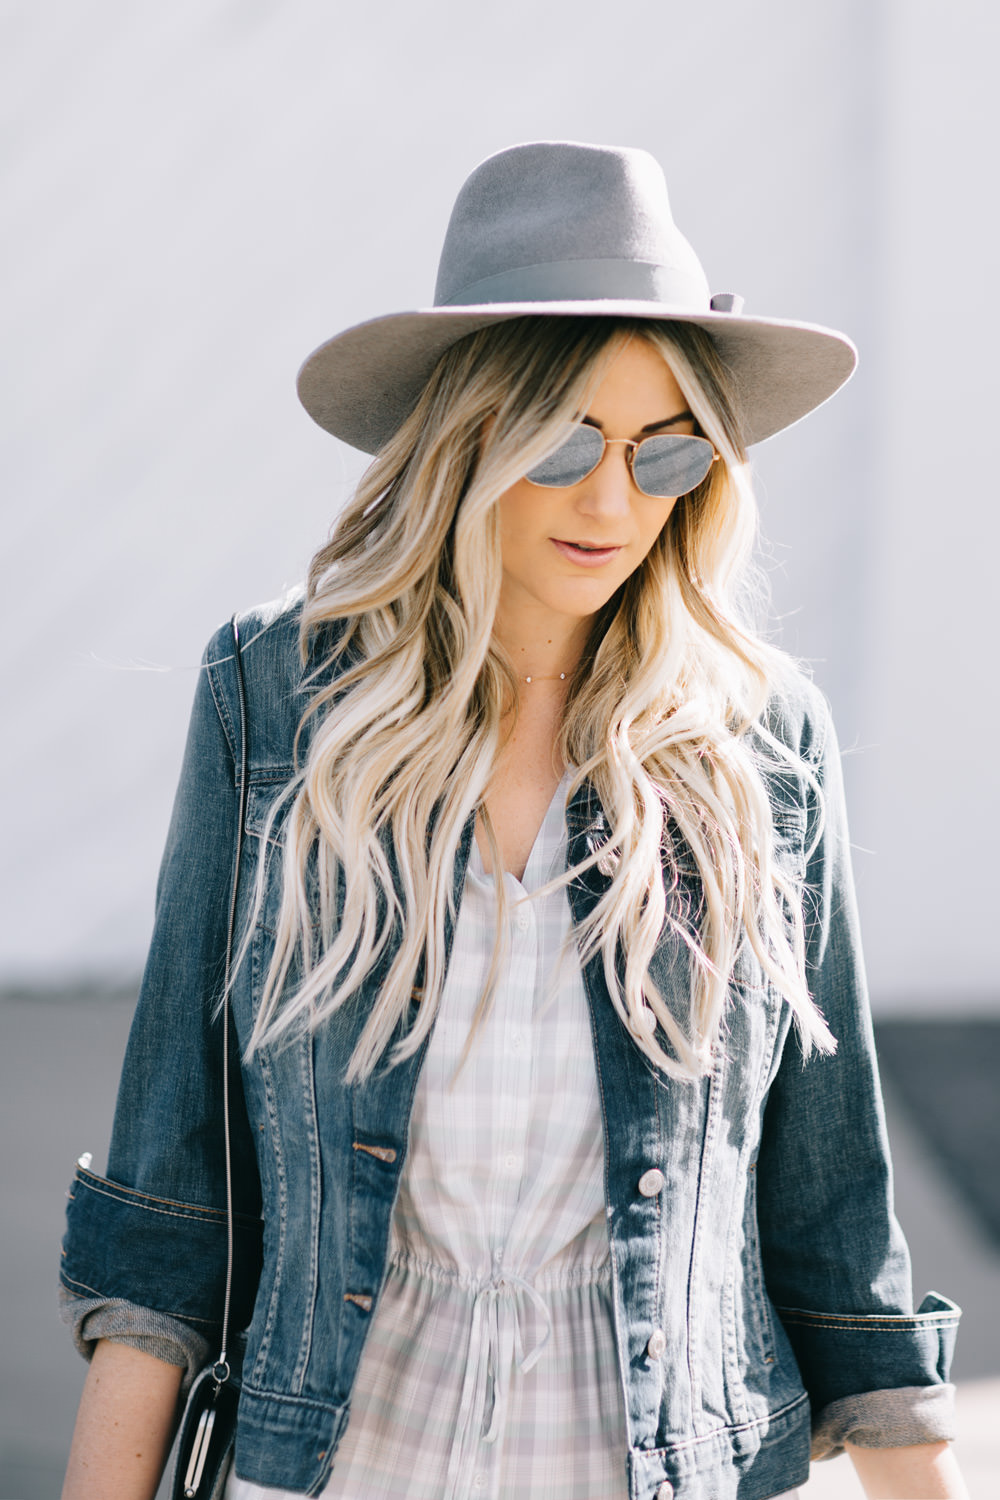 Dash of Darling shares how to shop smart with an affordable spring outfit with thredUP